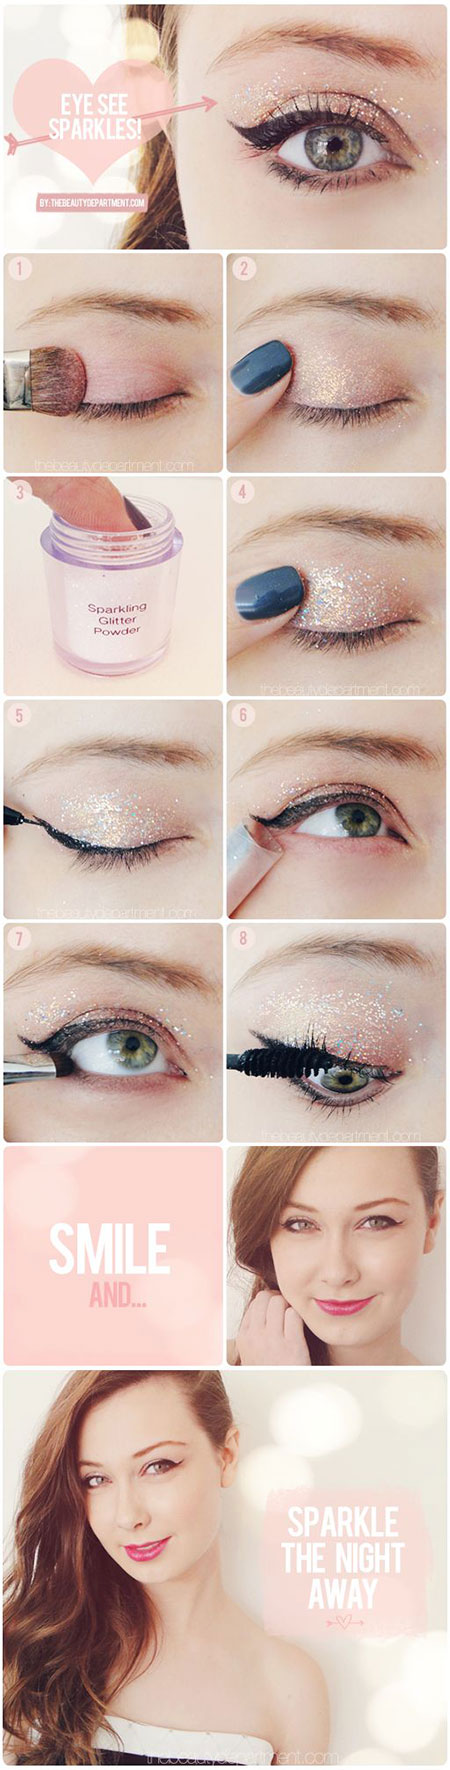 Easy-Step-By-Step-Christmas-Make-Up-Tutorials-For-Beginners-Learners-2014-4